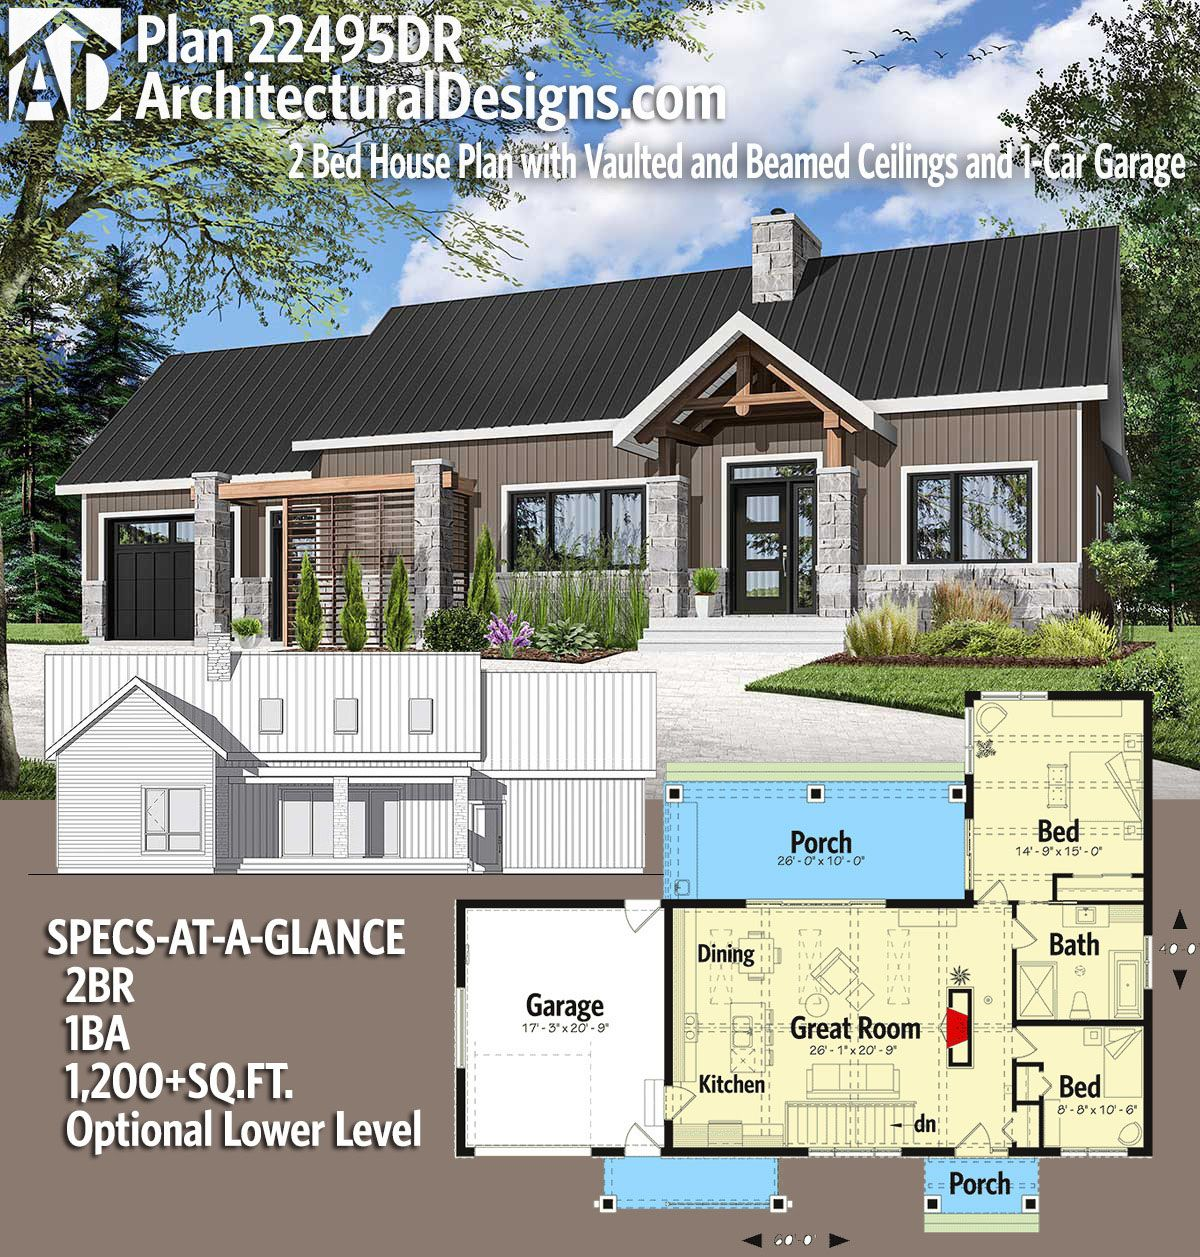 Plan 22495dr 2 Bed House Plan With Vaulted And Beamed Ceilings And 1 Car Garage House Plans House Blueprints House